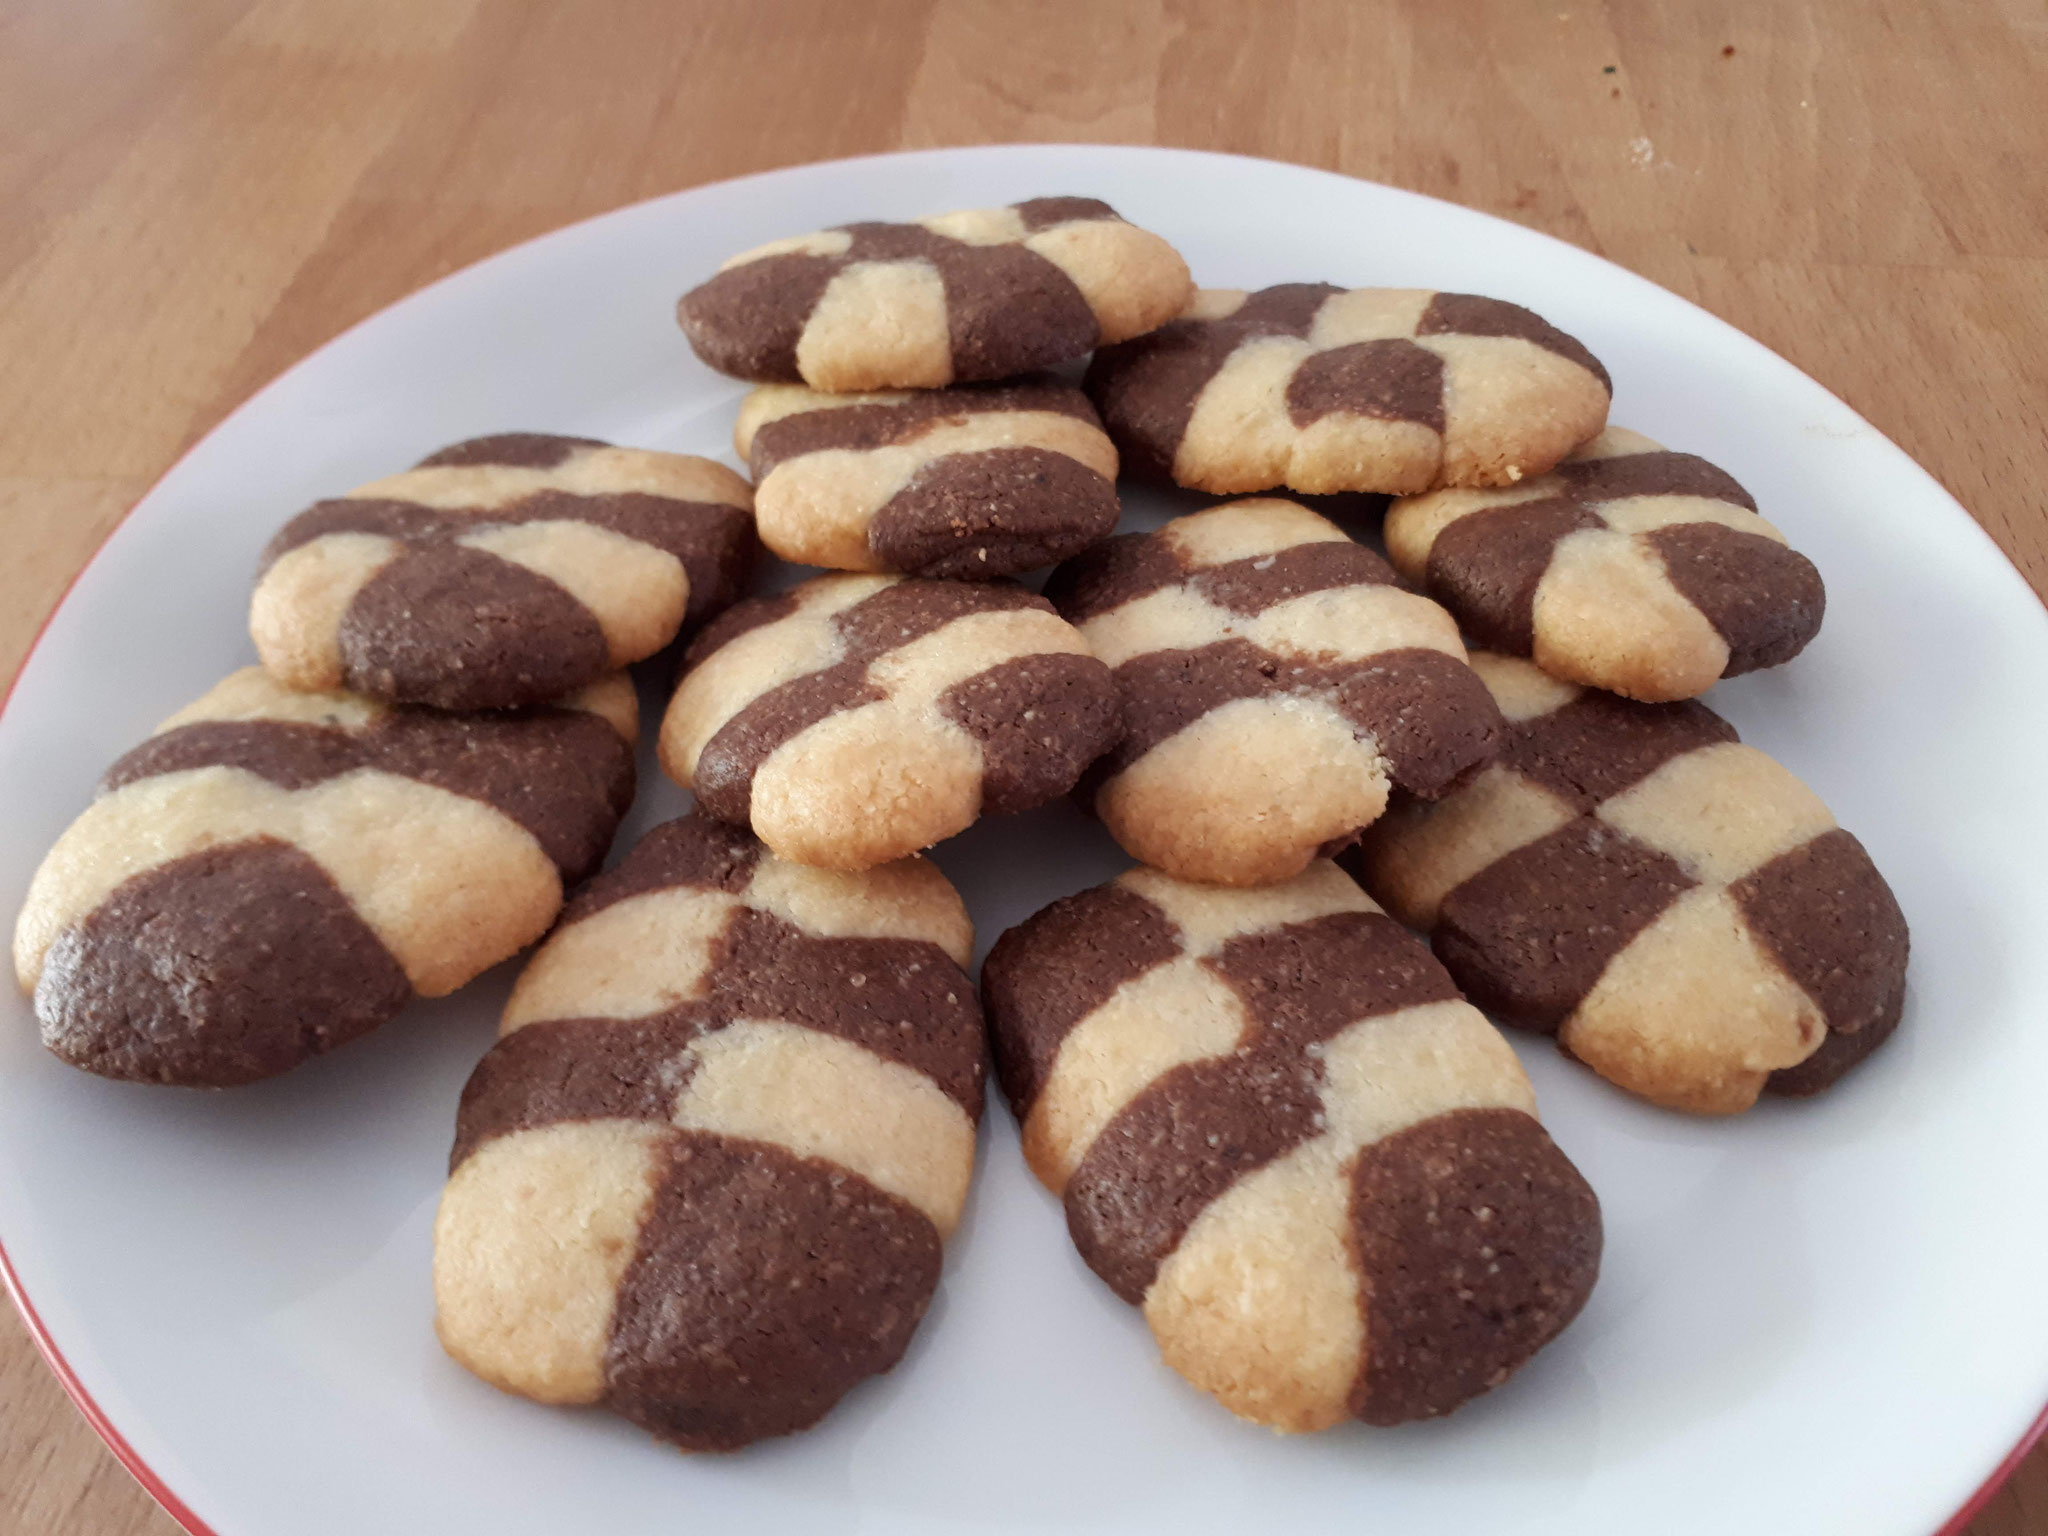 Atelier biscuits Jupille